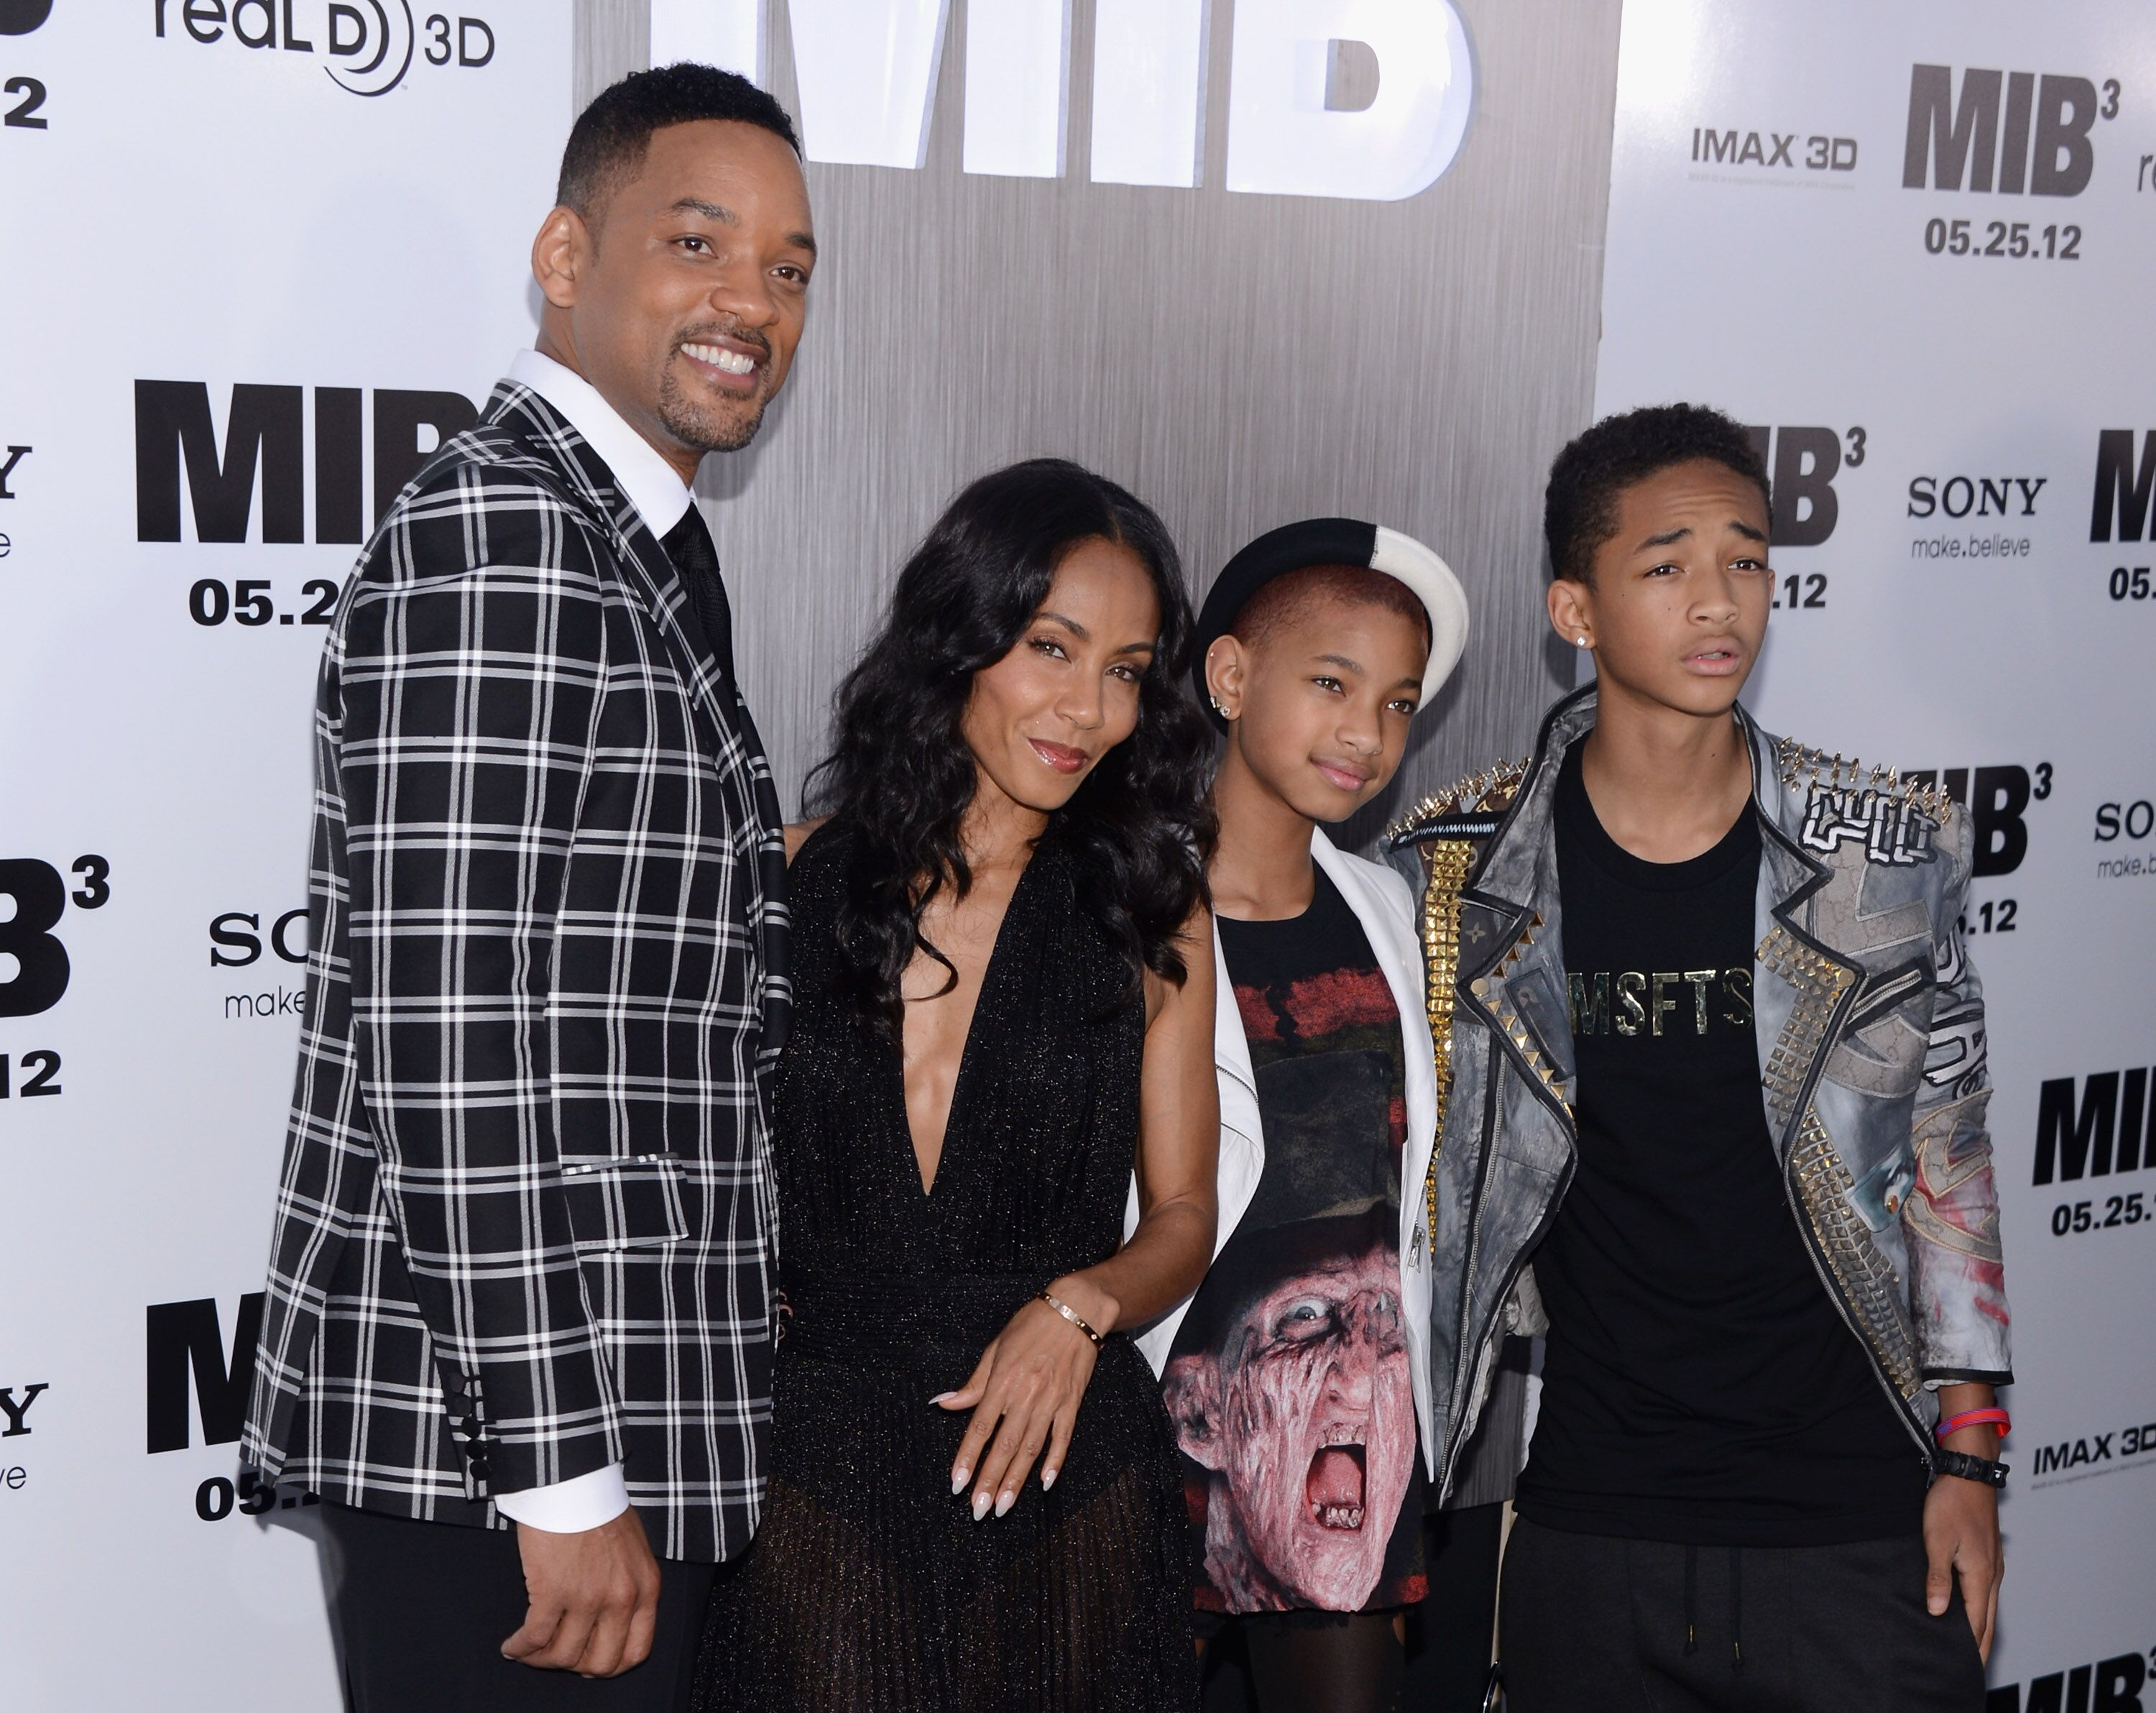 """The Smiths at the """"MIIB"""" movie premiere 